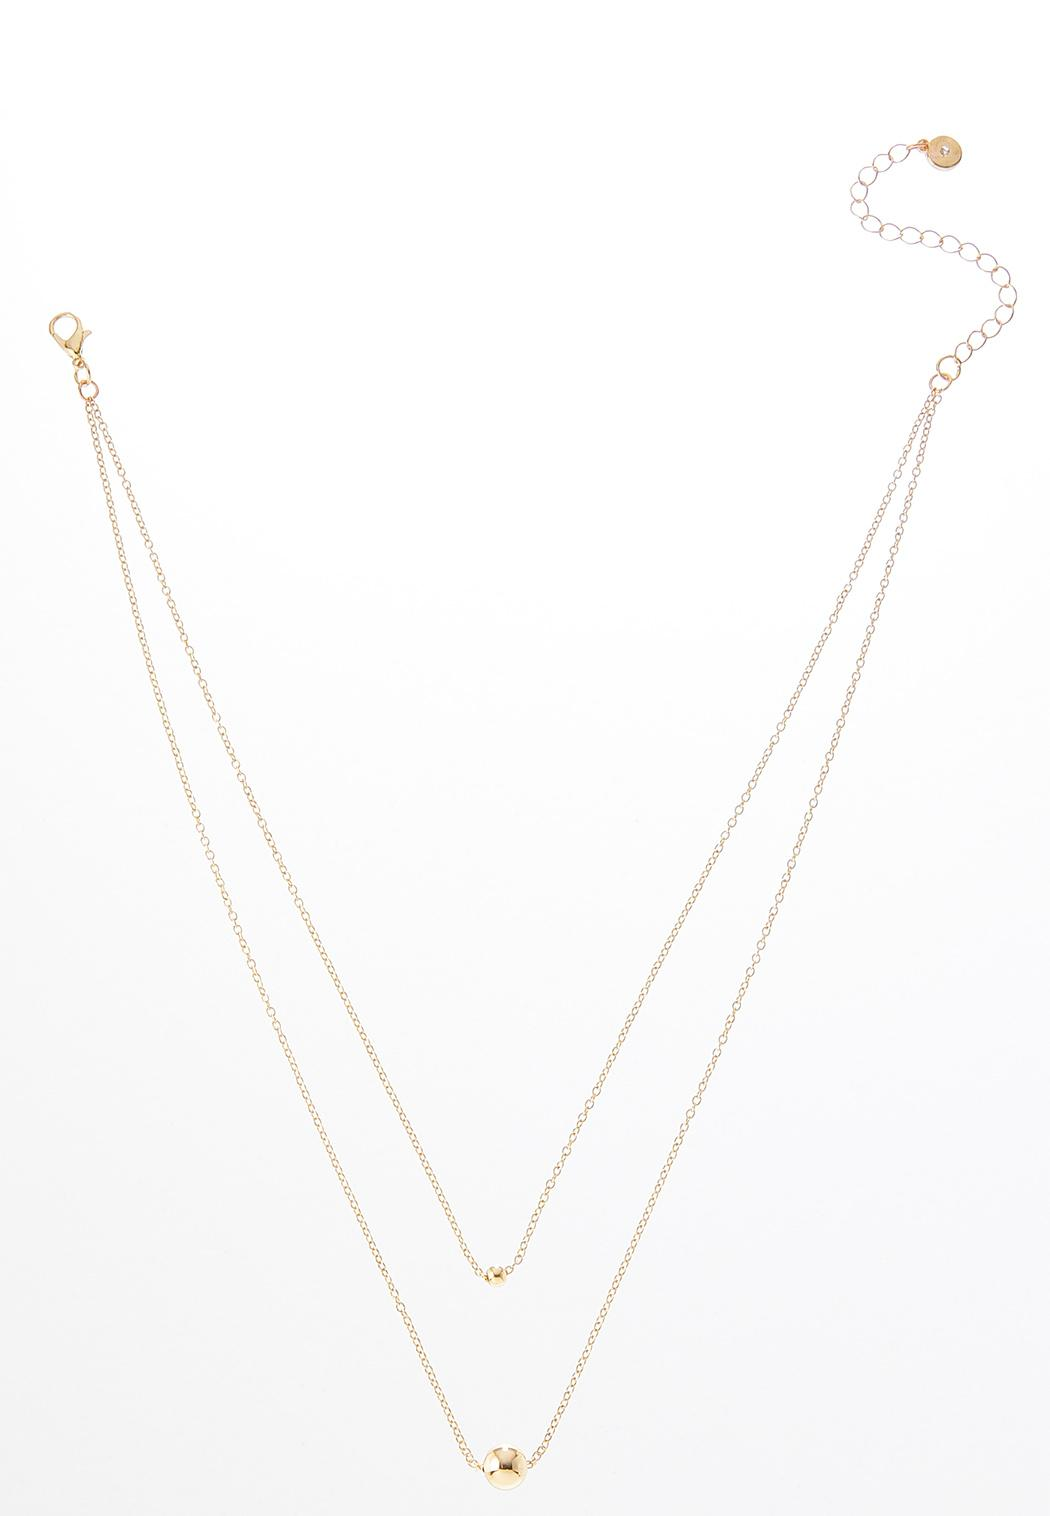 Layered Delicate Charm Necklace